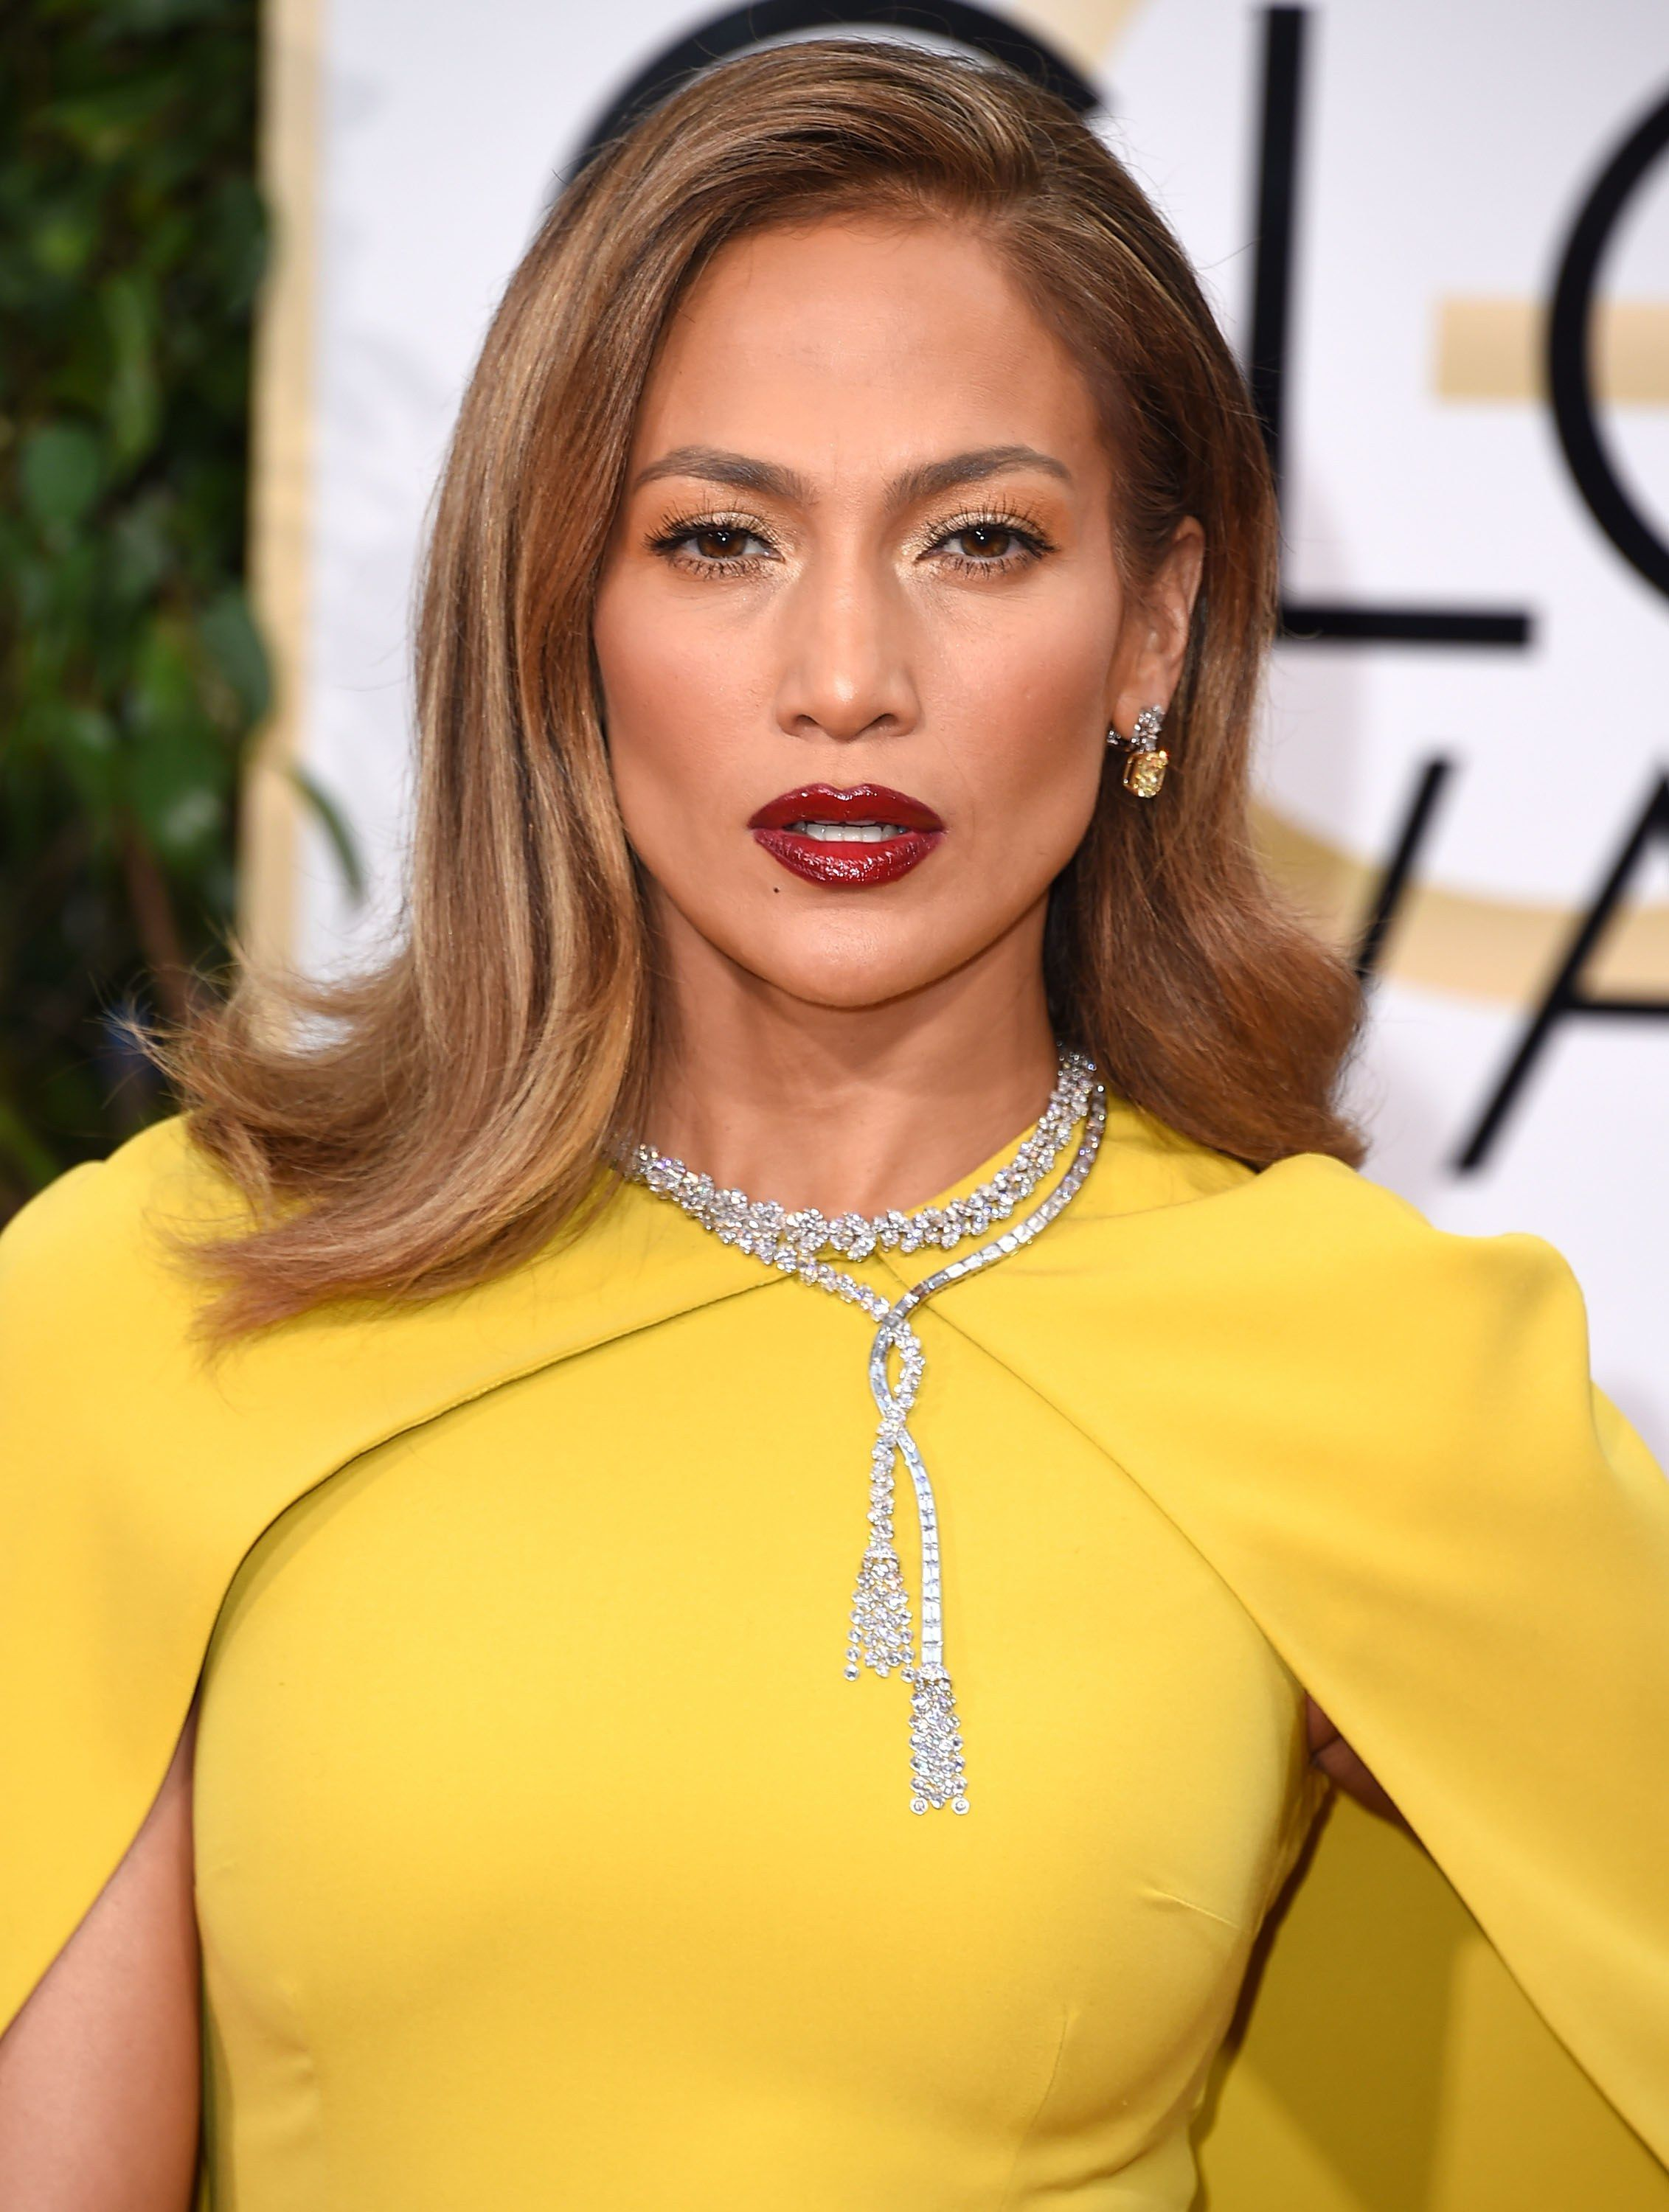 Jennifer Lopez naked: 27 of her most revealing outfits